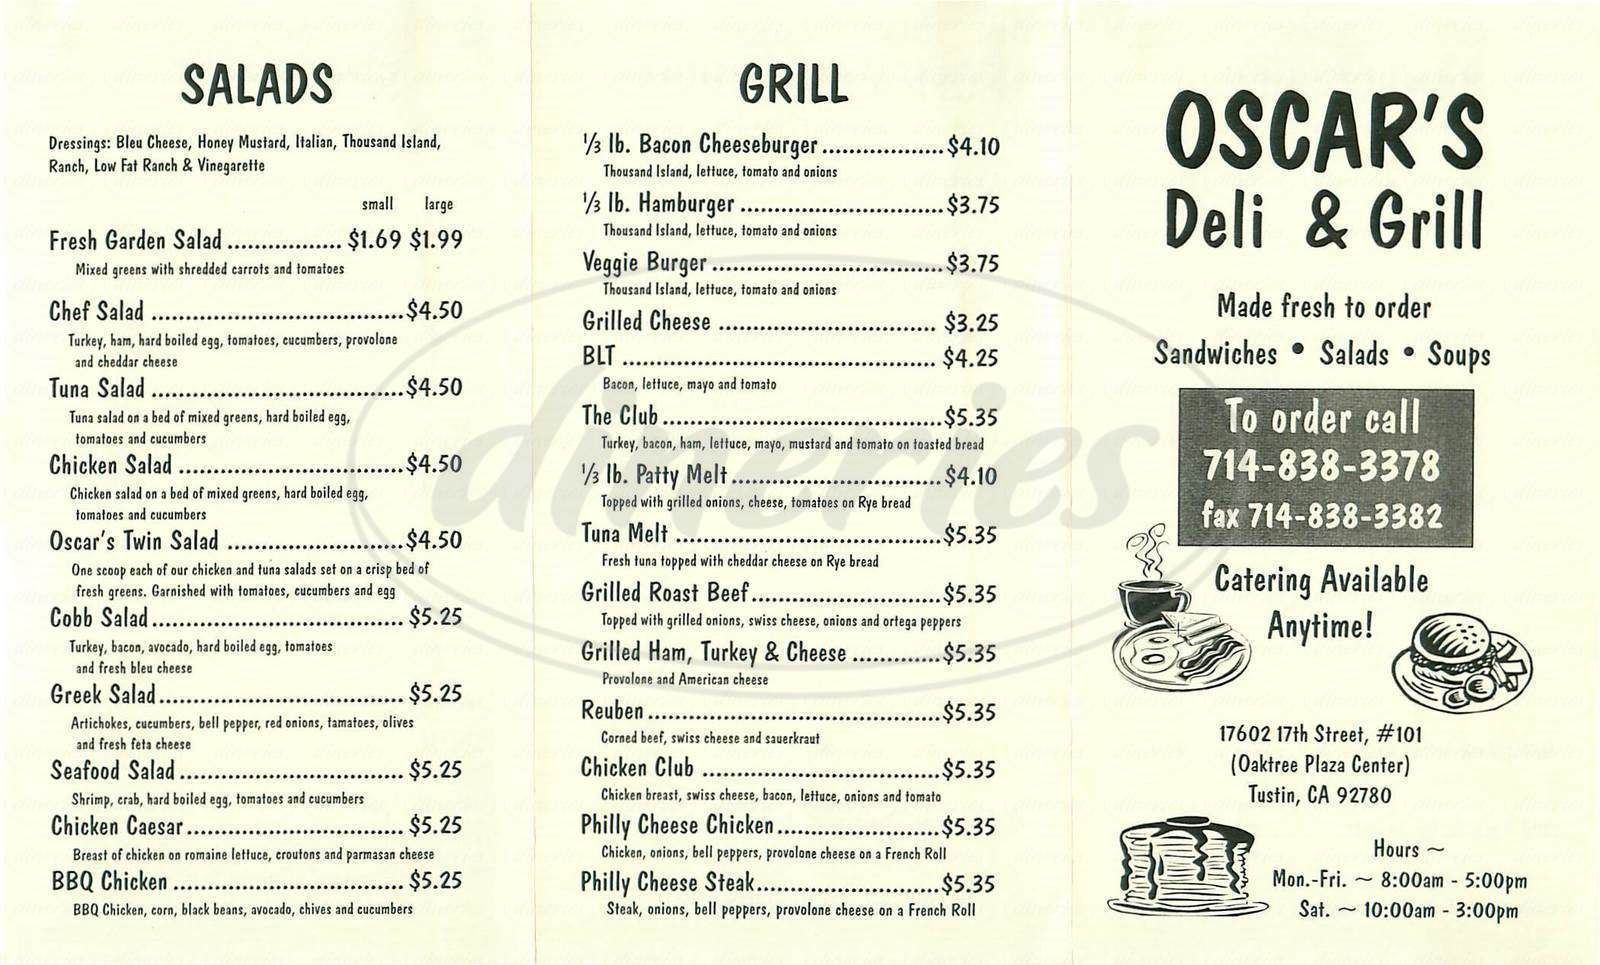 menu for Oscars Deli & Grill